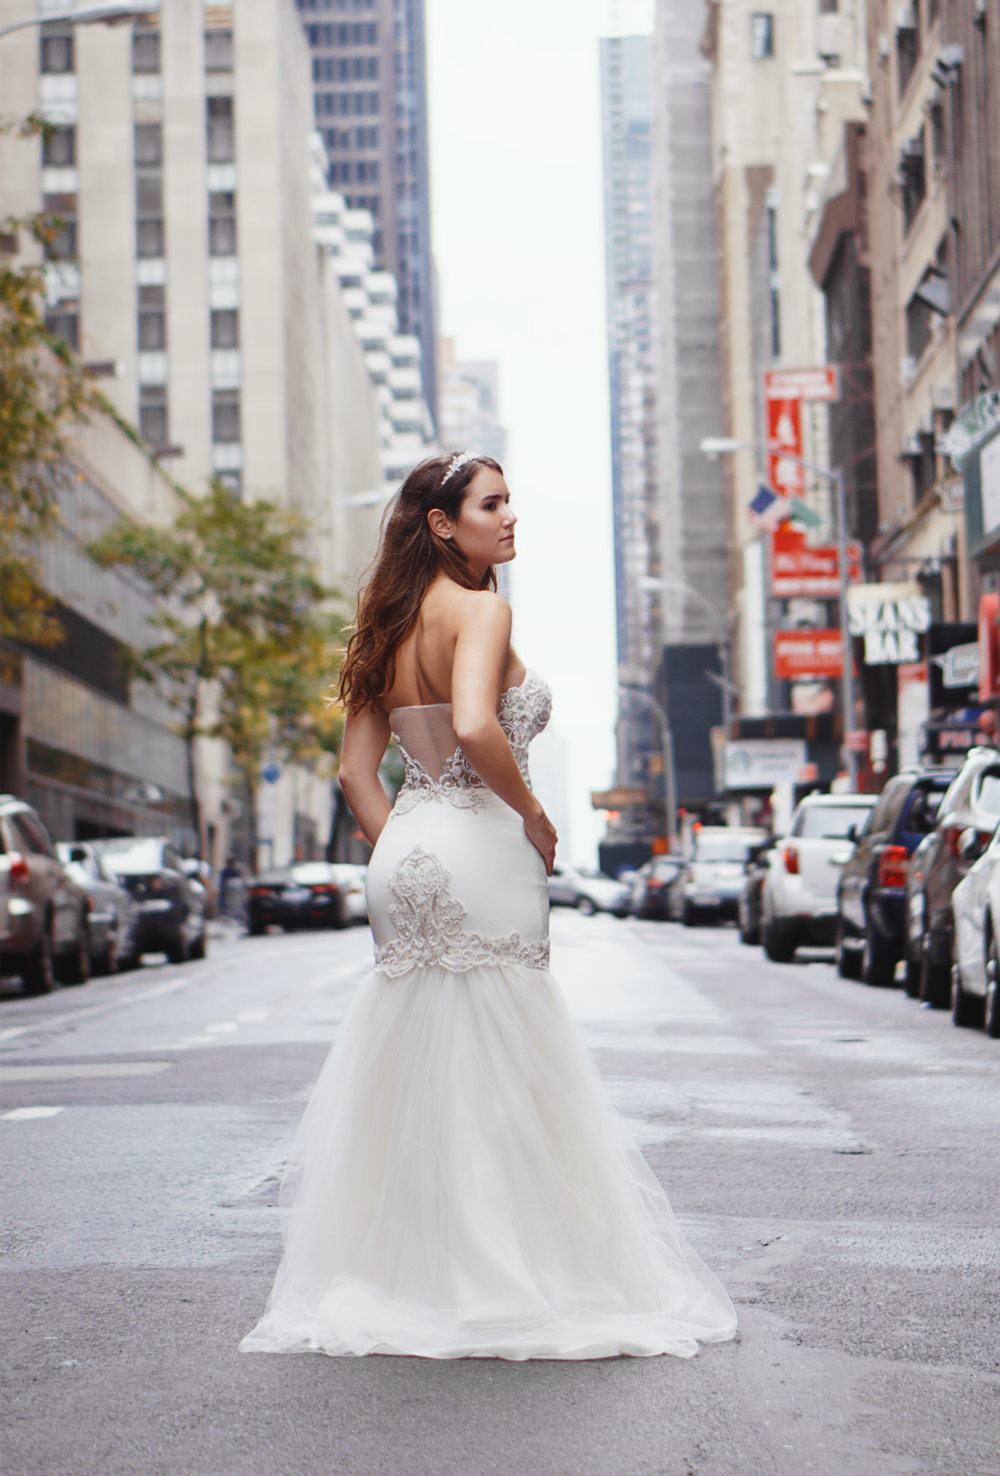 Camille Gown - From the Fall 2018 Collection -Light ivory strapless mermaid gown with full silk flounce. Bustier bodice with diamantes. Featuring an illusion back adorned with beaded threads. Fully lined in silk. Seen here with out Silk tulle overlay and diamante sash which is sold separately.Each dress is made by hand in the USA by our designers. You will love the comfort and support in our gowns structure!